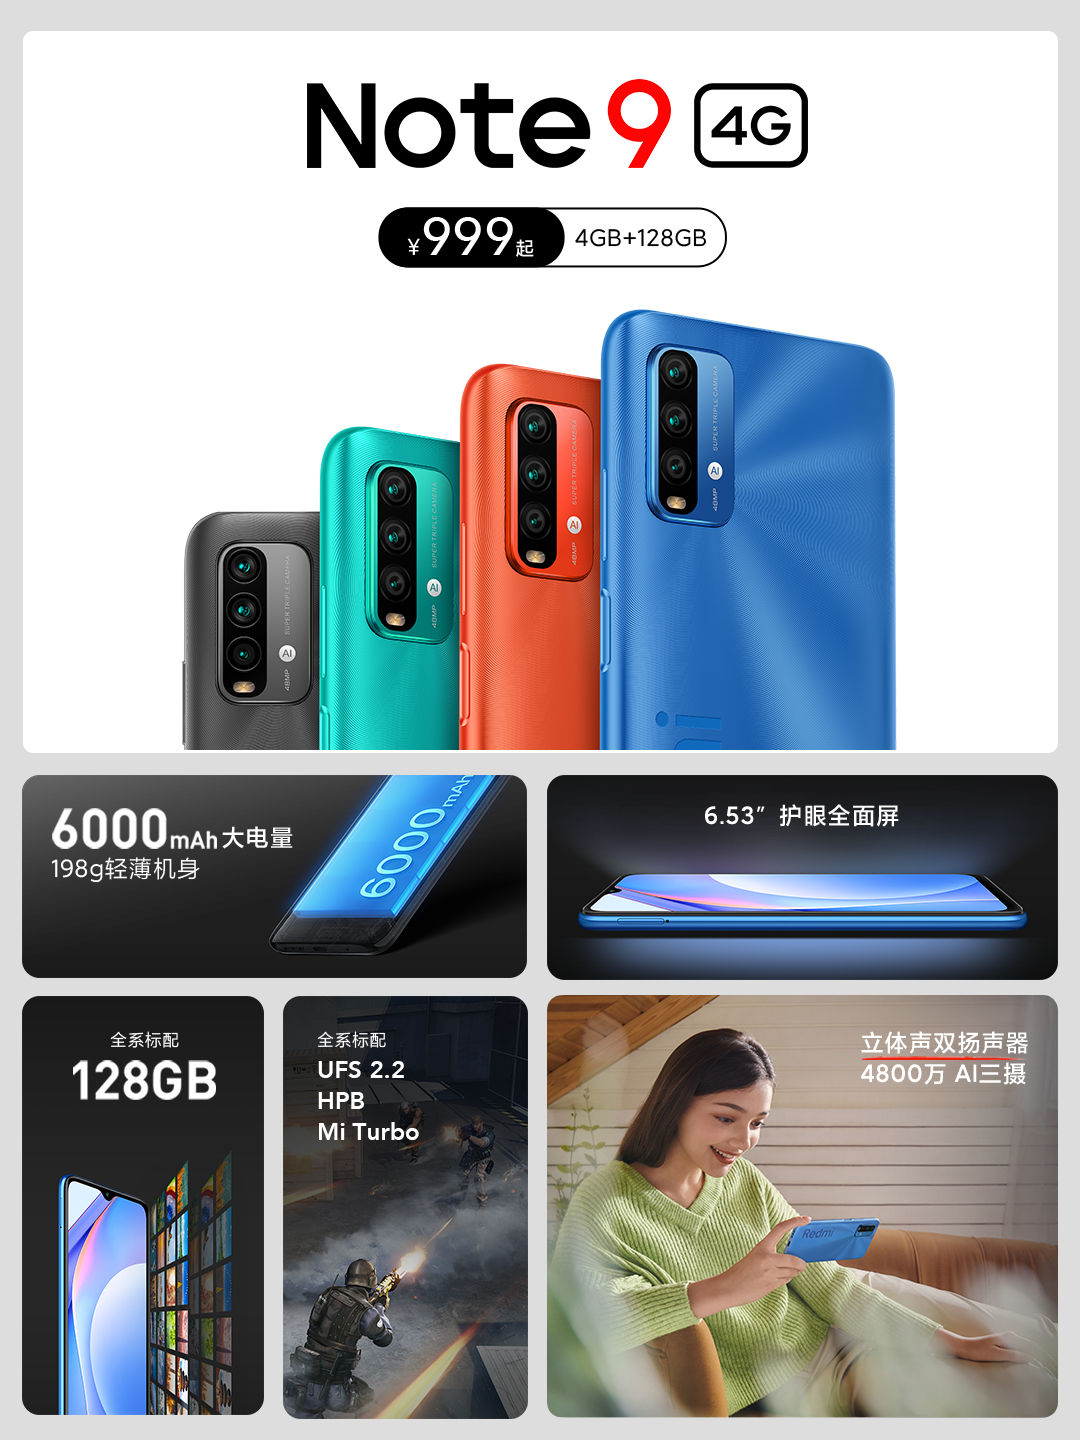 Redmi Note 9 Pro 5g Note 9 5g And Note 9 4g Launched In China Price Specifications